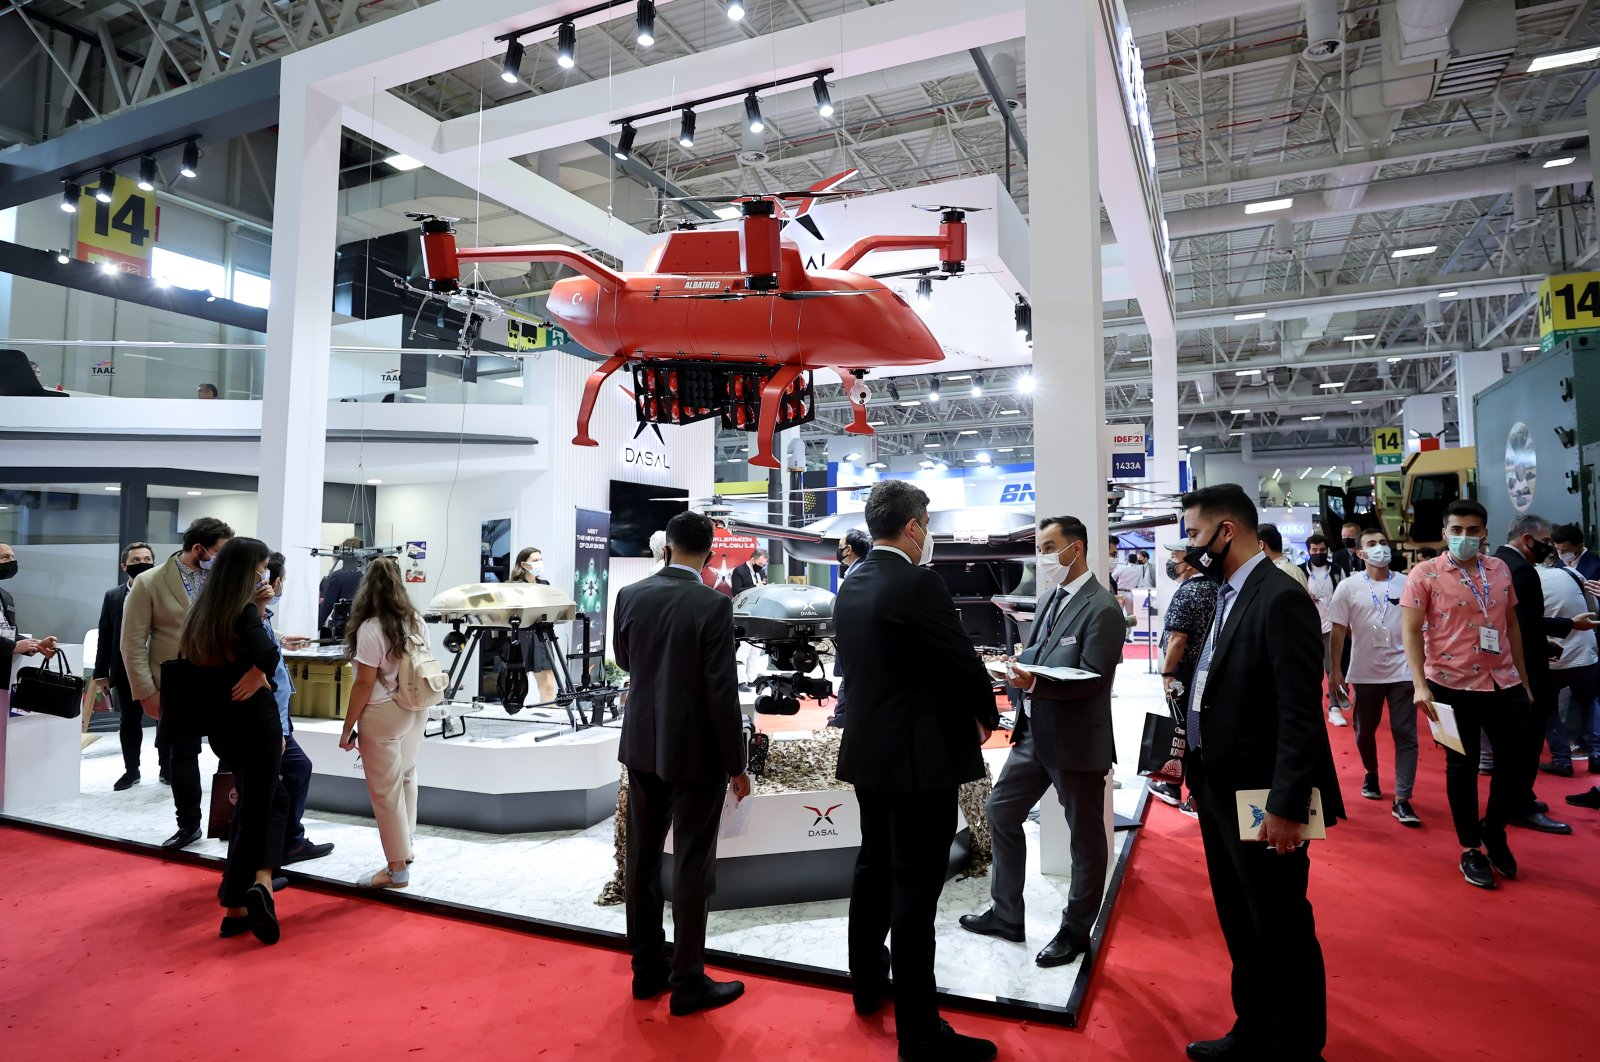 Firefighter UAVs belonging to DASAL in display at IDEF 2021, Istanbul, Turkey, Aug. 23, 2021. (AA Photo)